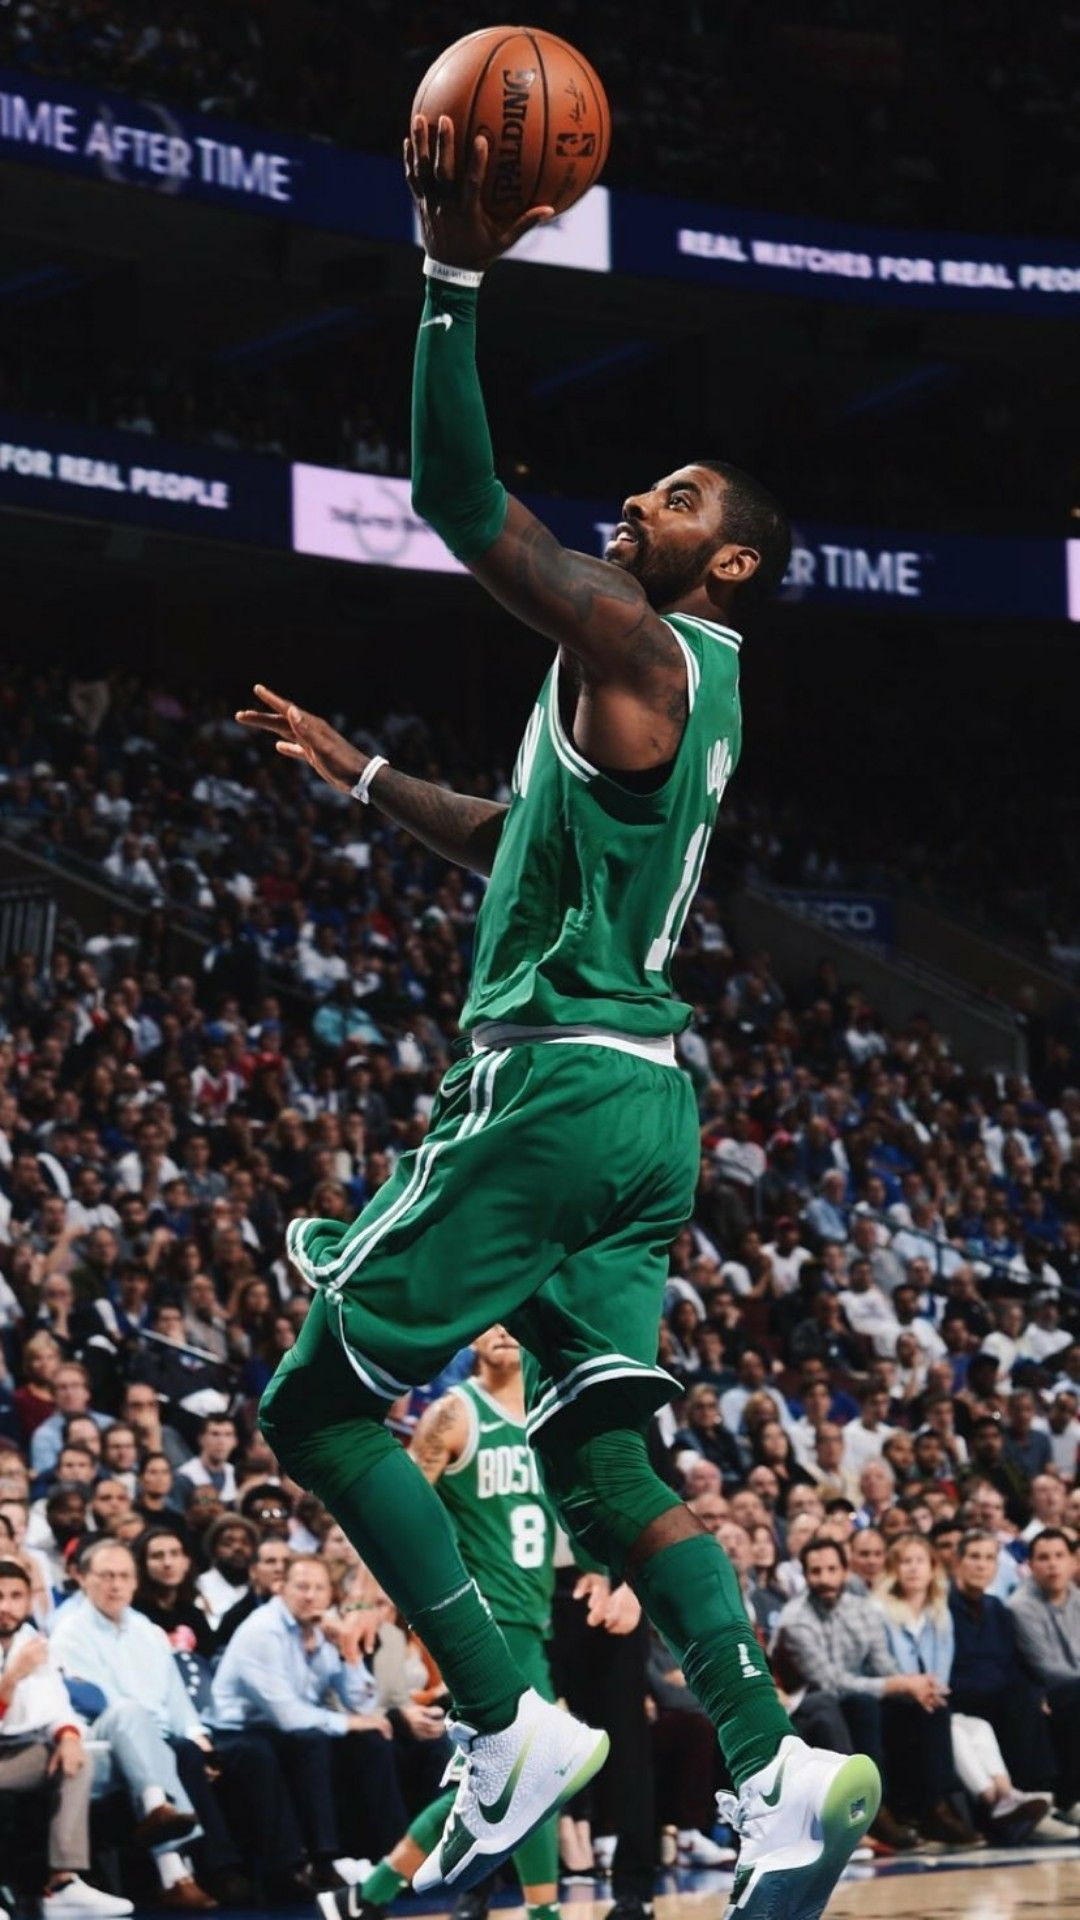 Kyrie Irving Nba Wallpapers High Quality For Iphone Wallpaper On Hupages Com If You Like It Dont Forget Save It O Kyrie Irving Celtics Kyrie Irving Irving Nba